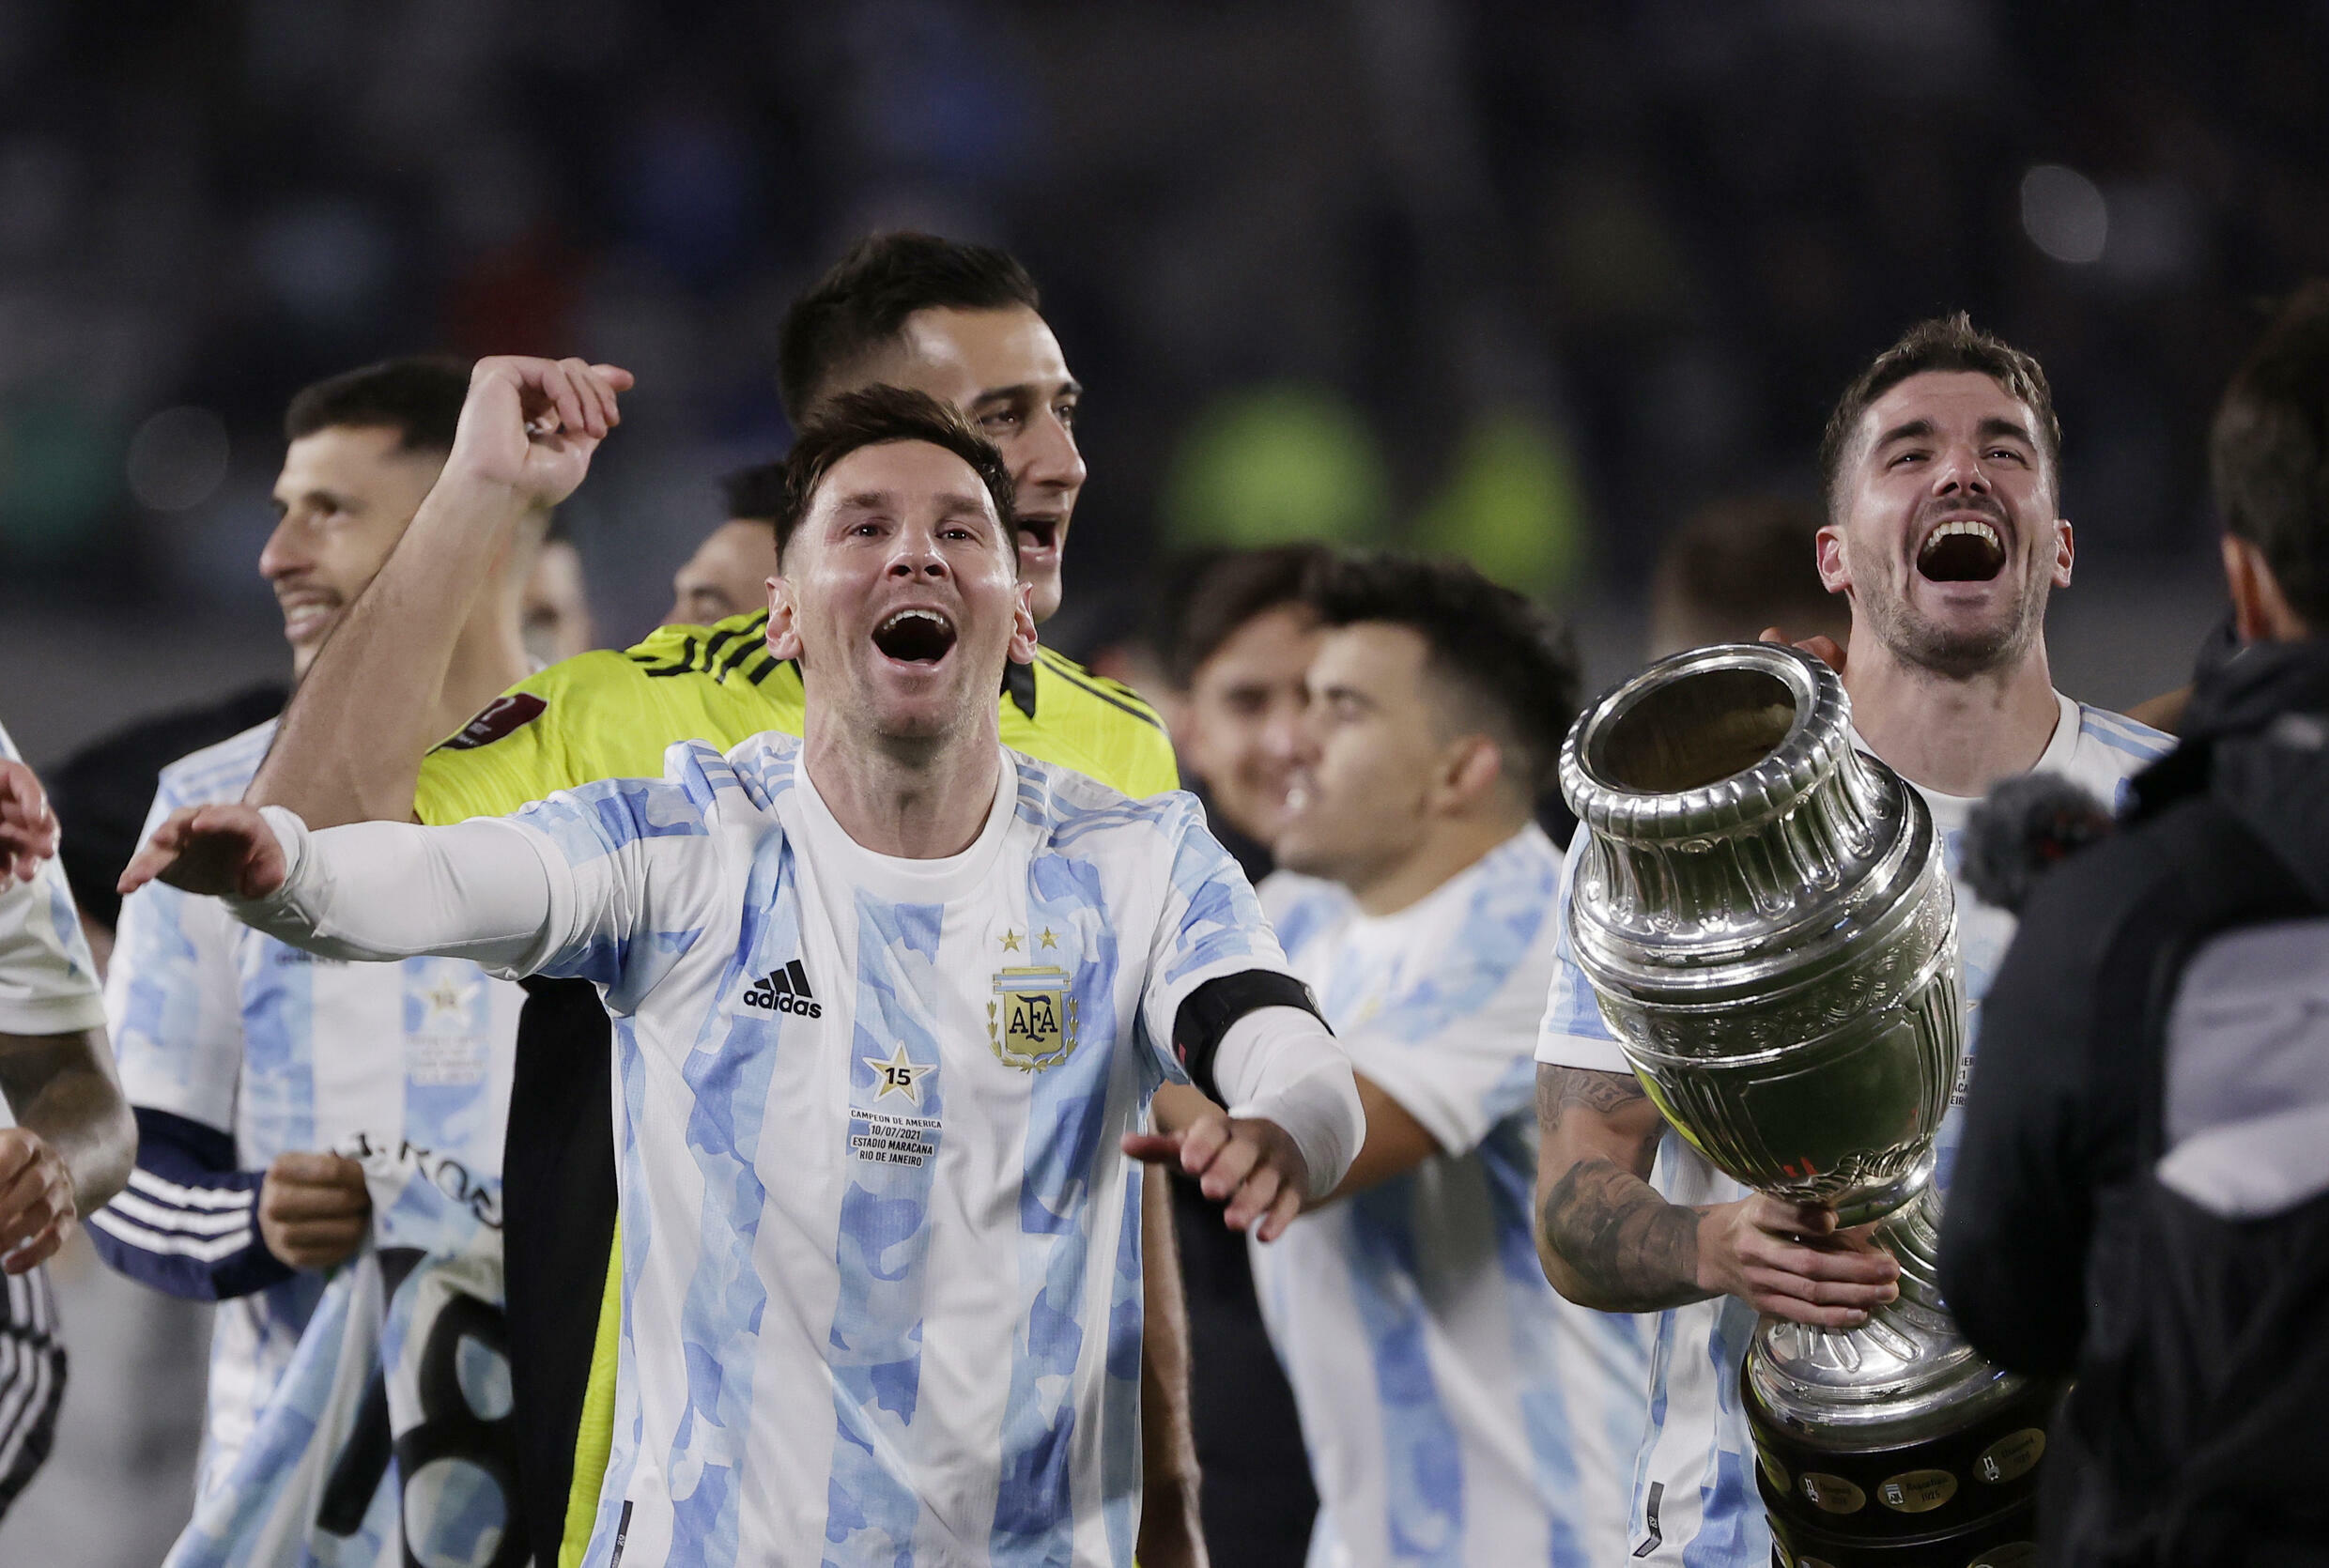 2021-09-10T021754Z_774103488_HP1EH9A06DR8W_RTRMADP_3_SOCCER-WORLDCUP-ARG-BOL-REPORT